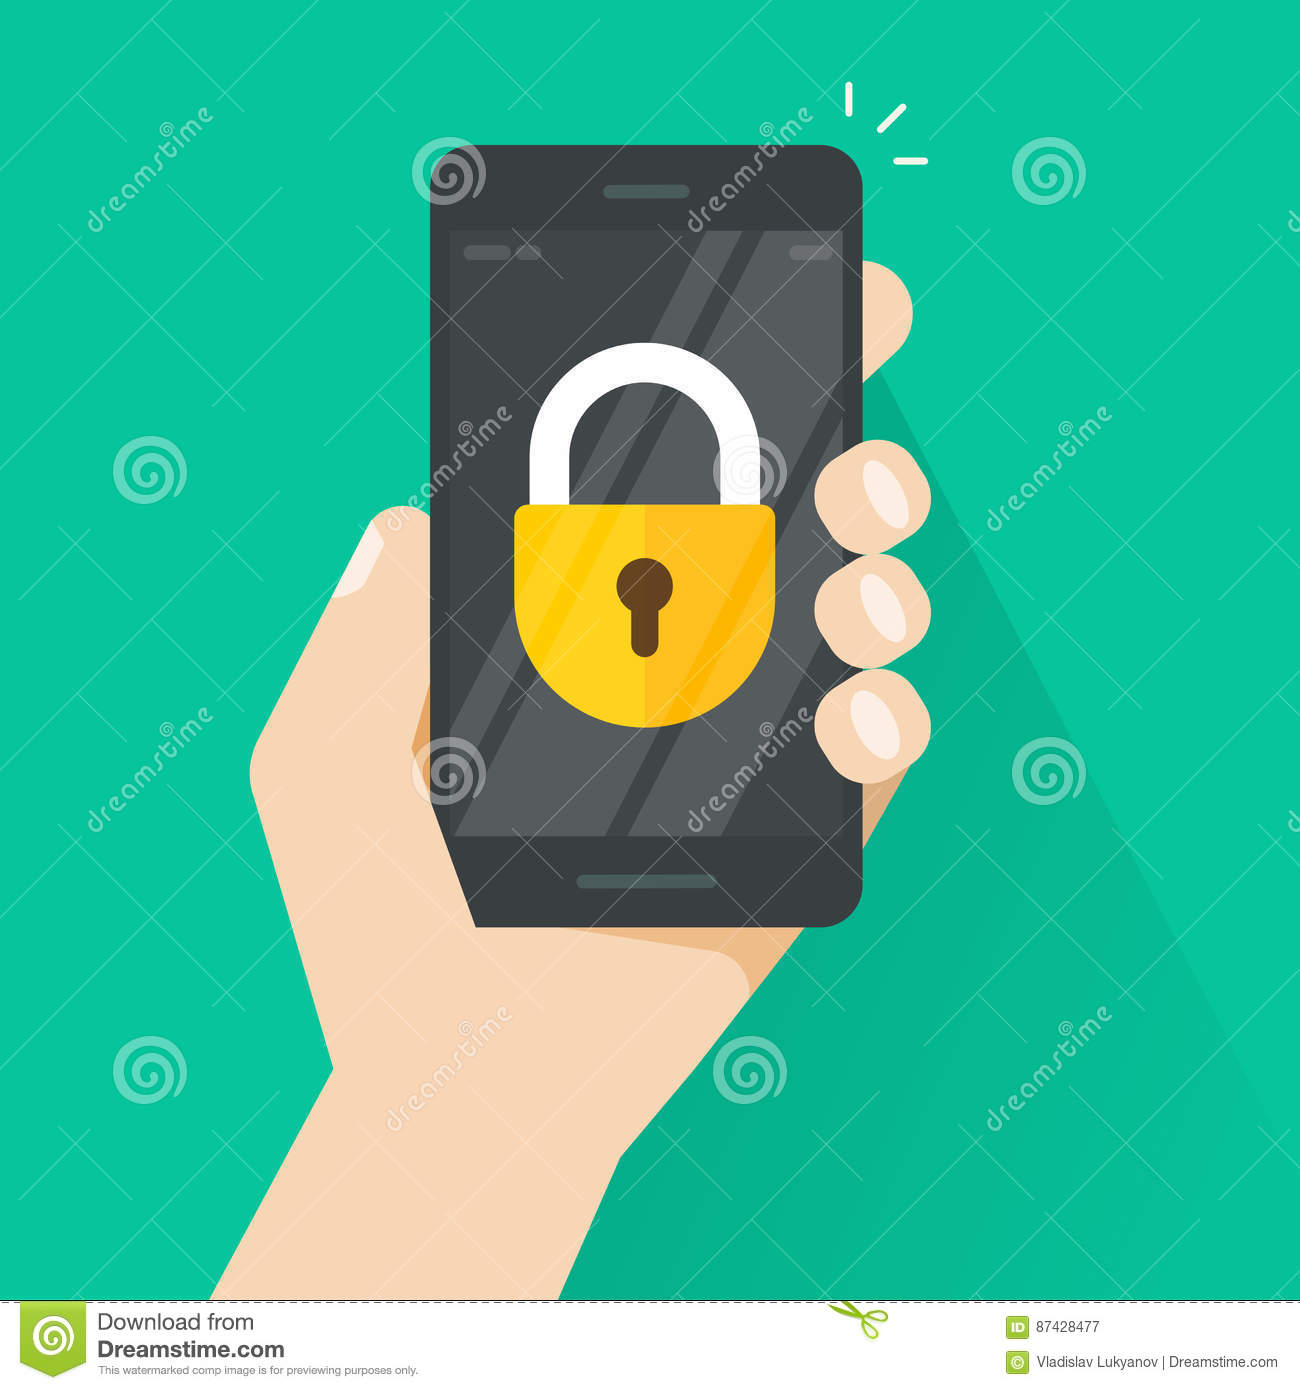 how to delete all data on a locked phone